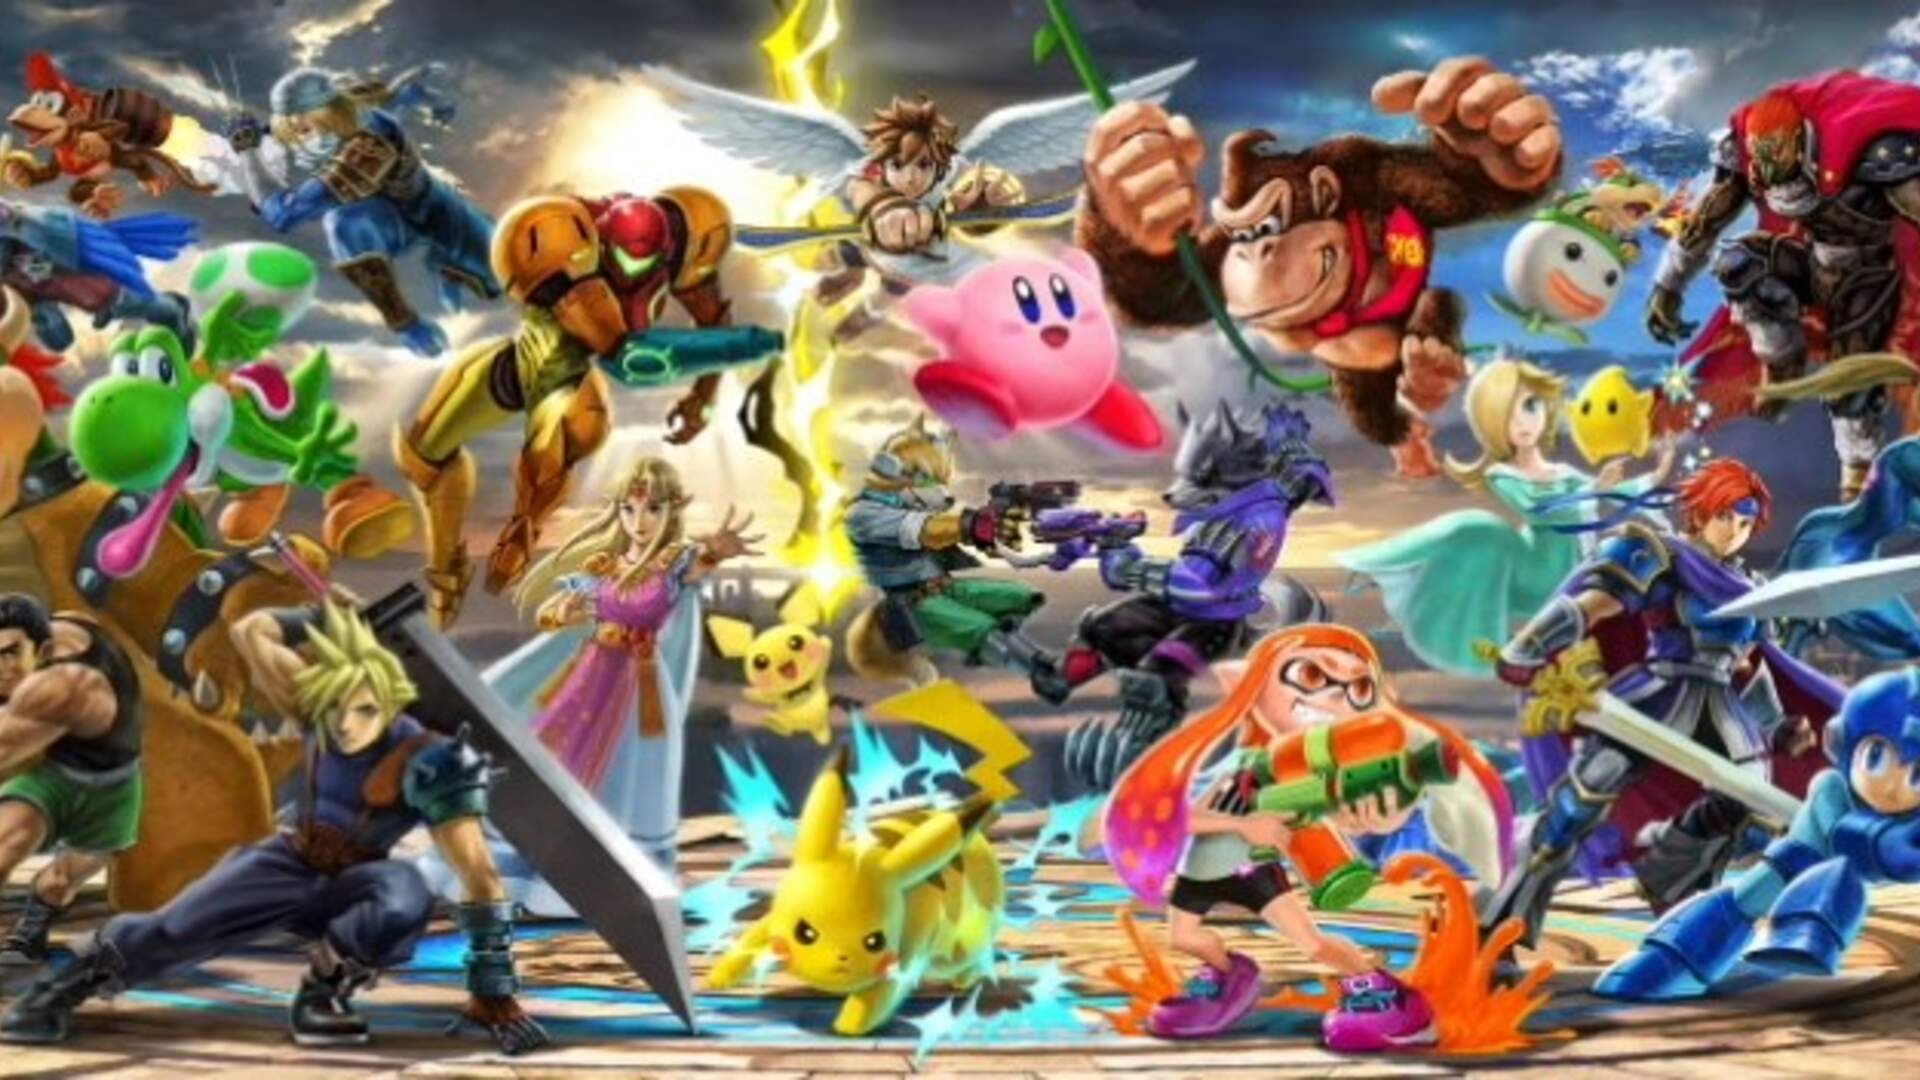 How to Unlock Characters in Super Smash Bros Ultimate - Fastest Way to Unlock All Characters